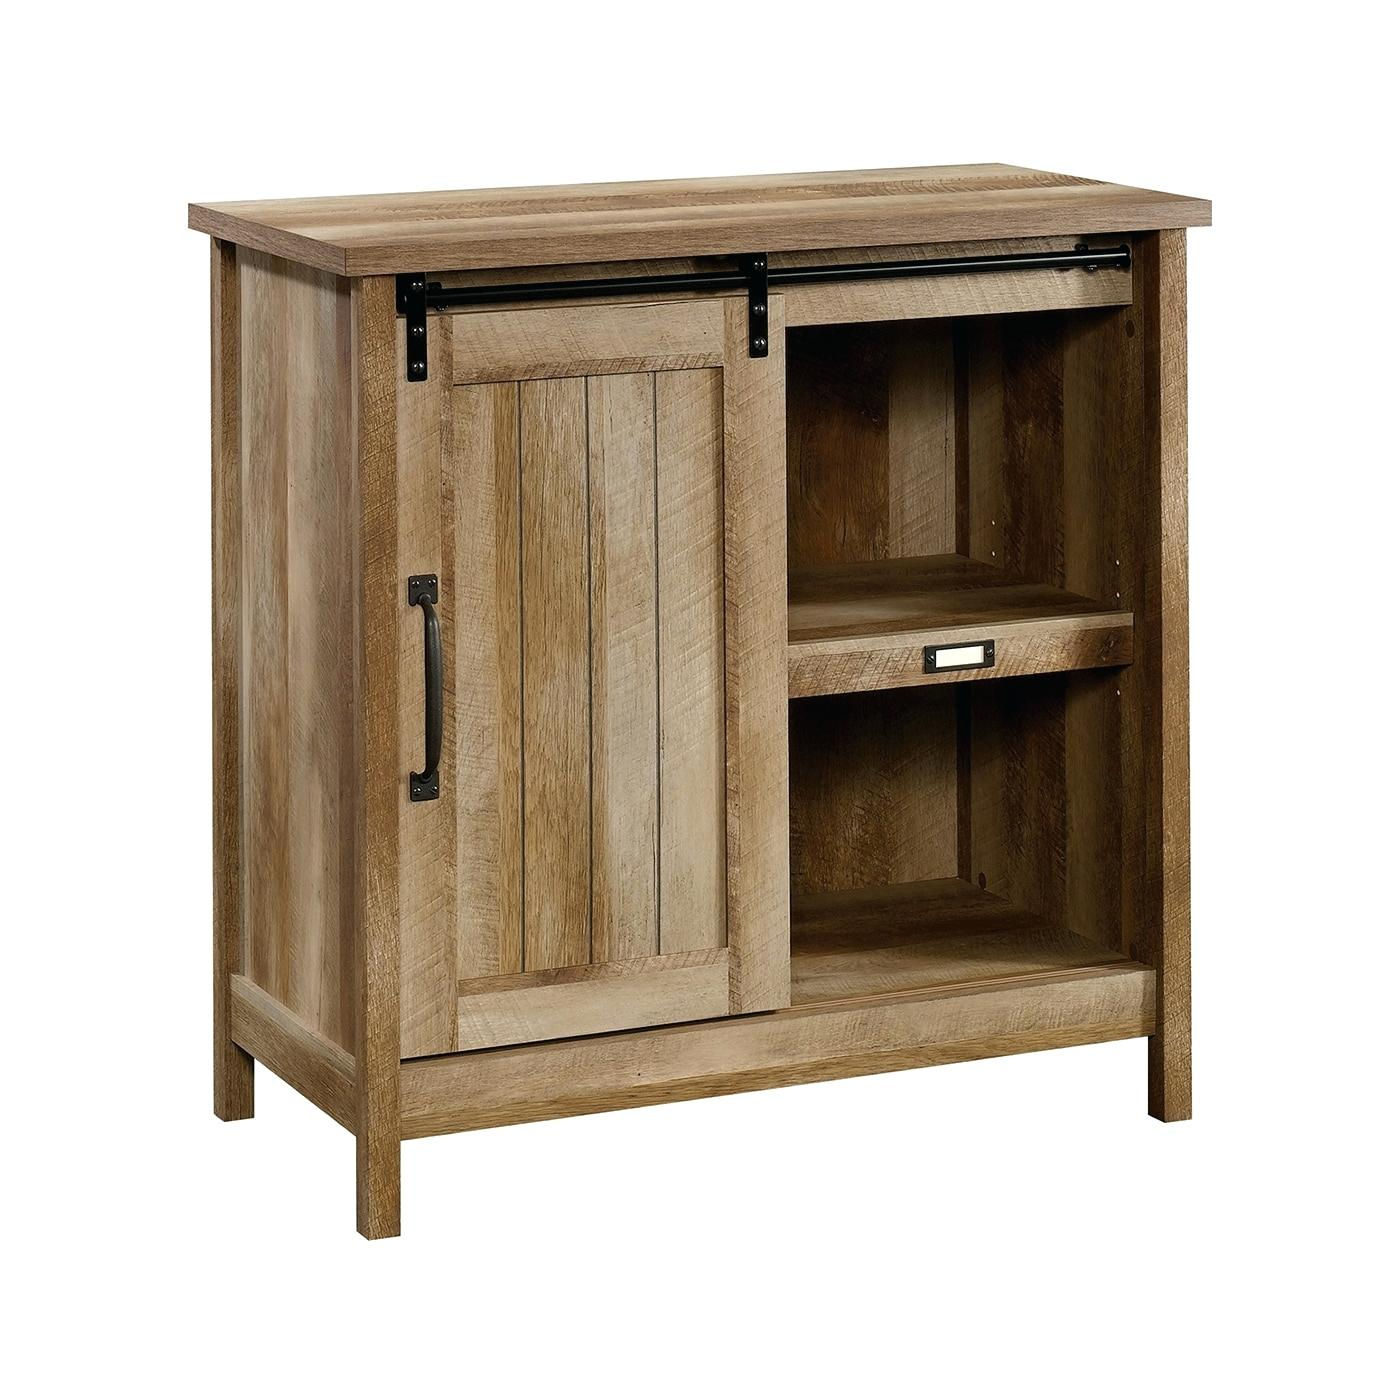 accent storage cabinet gabriellaflom adept targetcom threshold windham table small telephone wall mounted metal furniture legs modern wine end barn door entertainment center inch